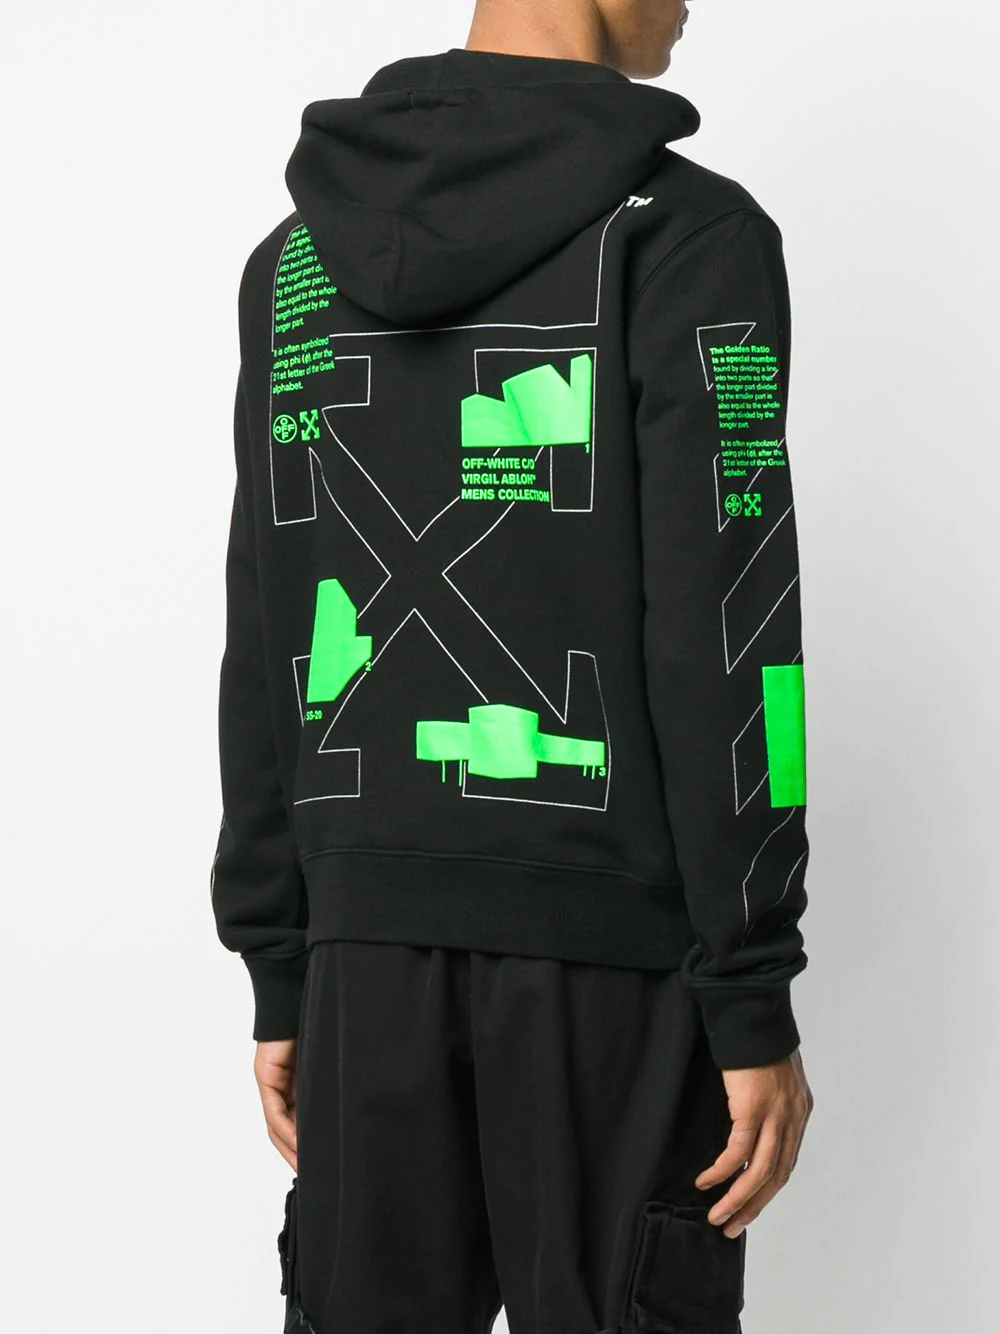 Off White 3d Crossed Off Hoodie Farfetch Off White Clothing Off White Hoodies [ 1334 x 1000 Pixel ]